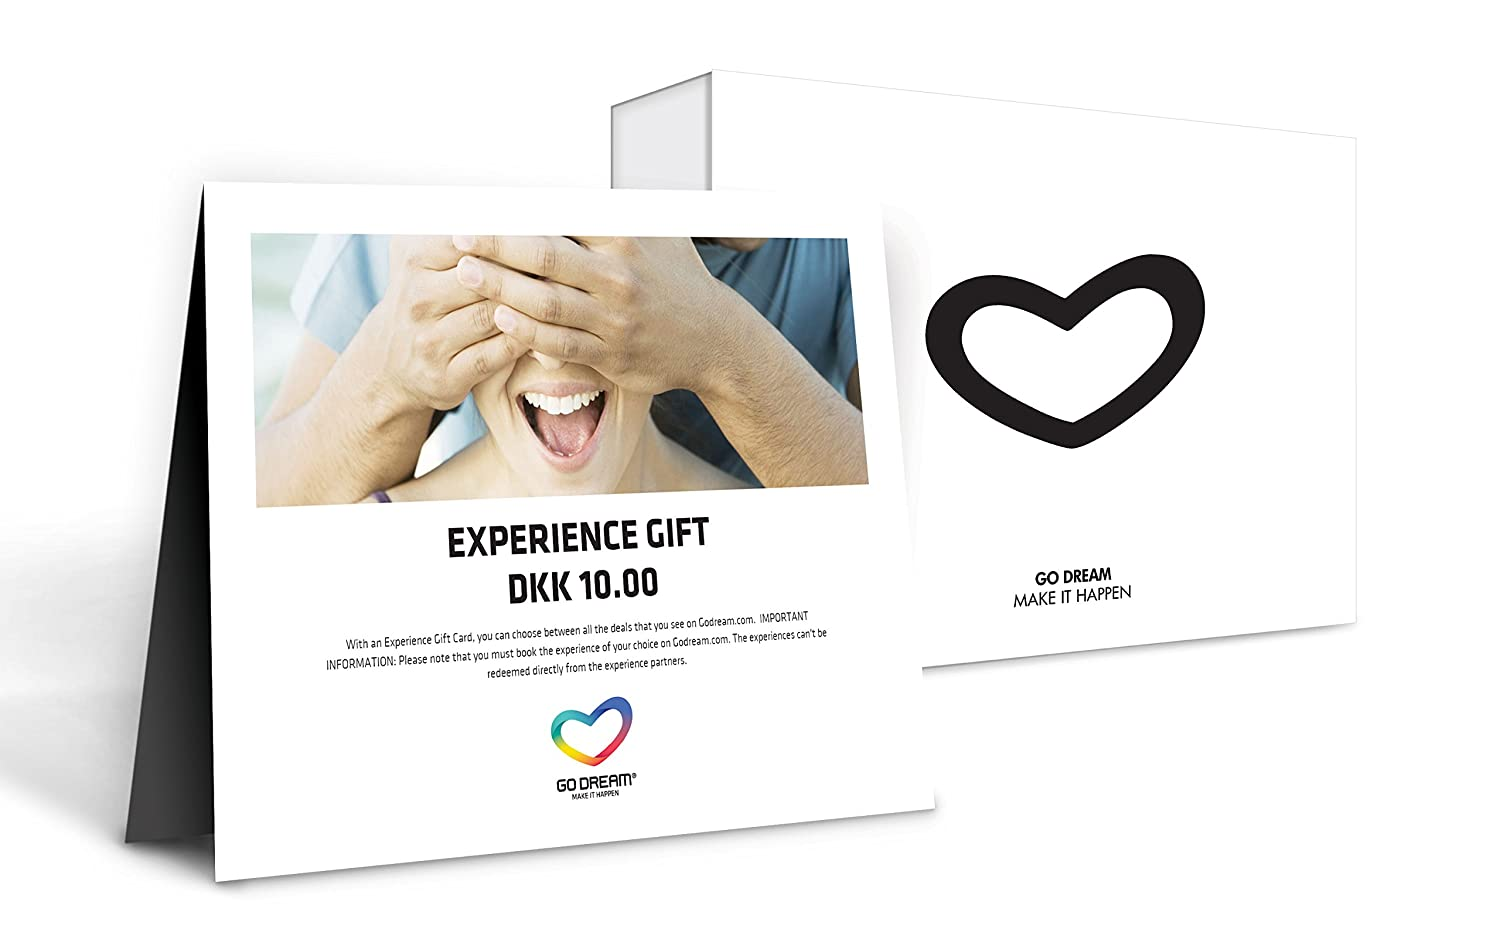 GO DREAM Open Experience Gift card - Get Access to More Than 150 Experience Gifts Within New York Area - Sent in a Gift Package (500)